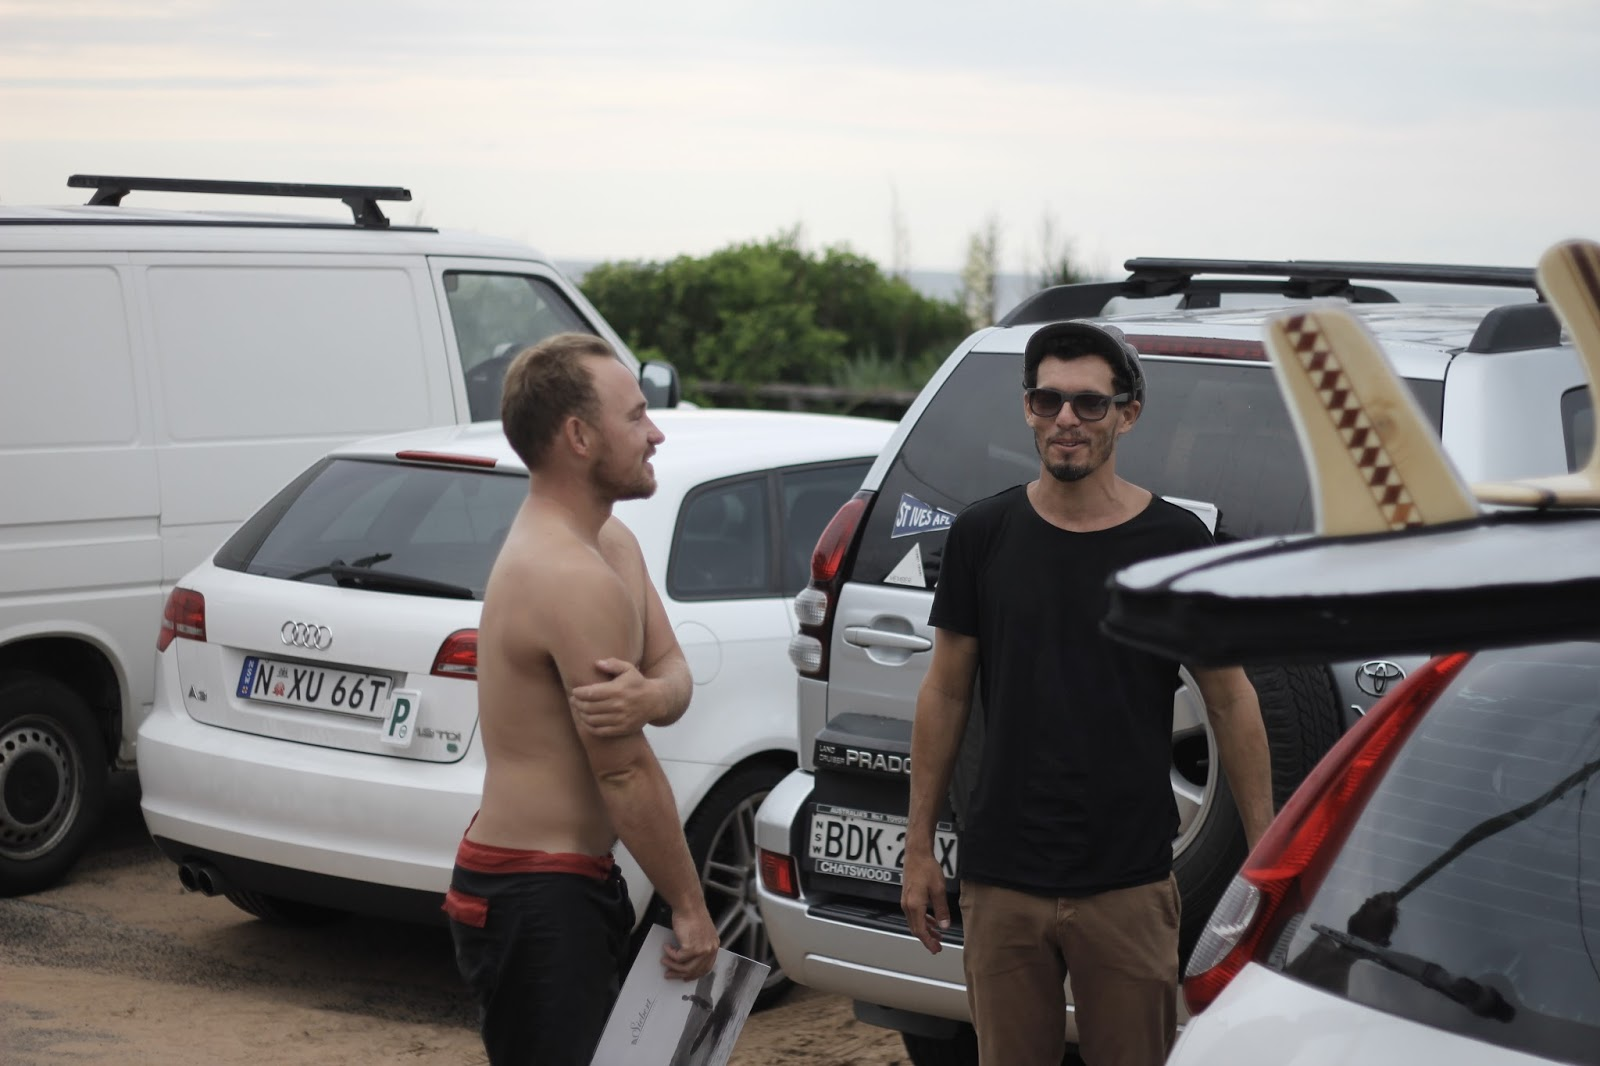 26-03-2016-australia-siebert-surfboards-01